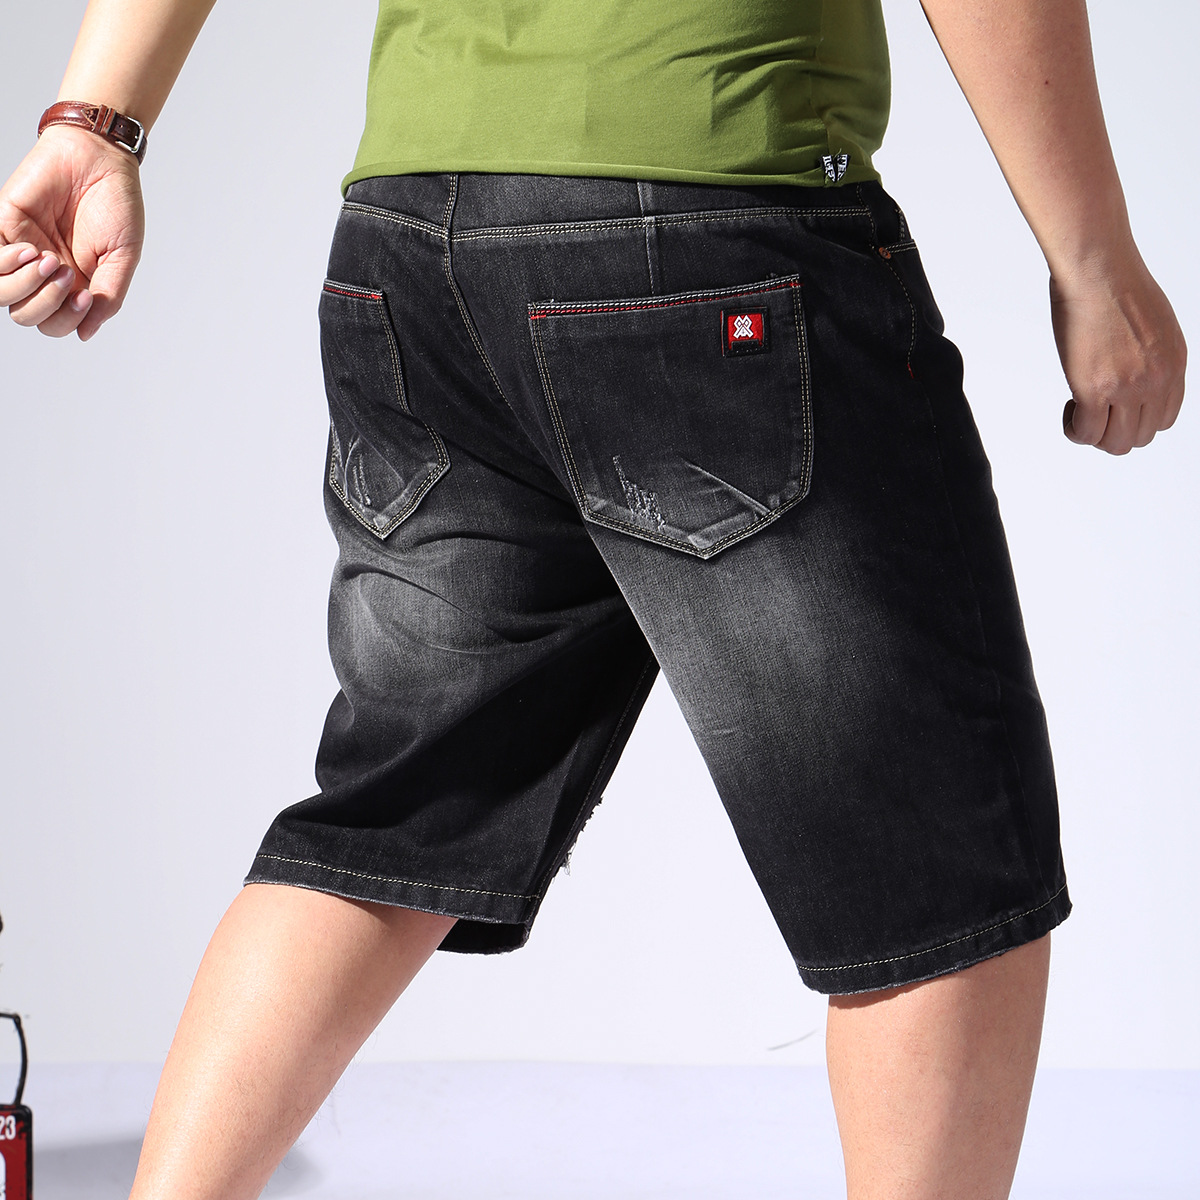 16703 No Bombs Large Size With Holes Denim Shorts Men's Plus-sized Breeches Summer Large Size Shorts Men's 32-48